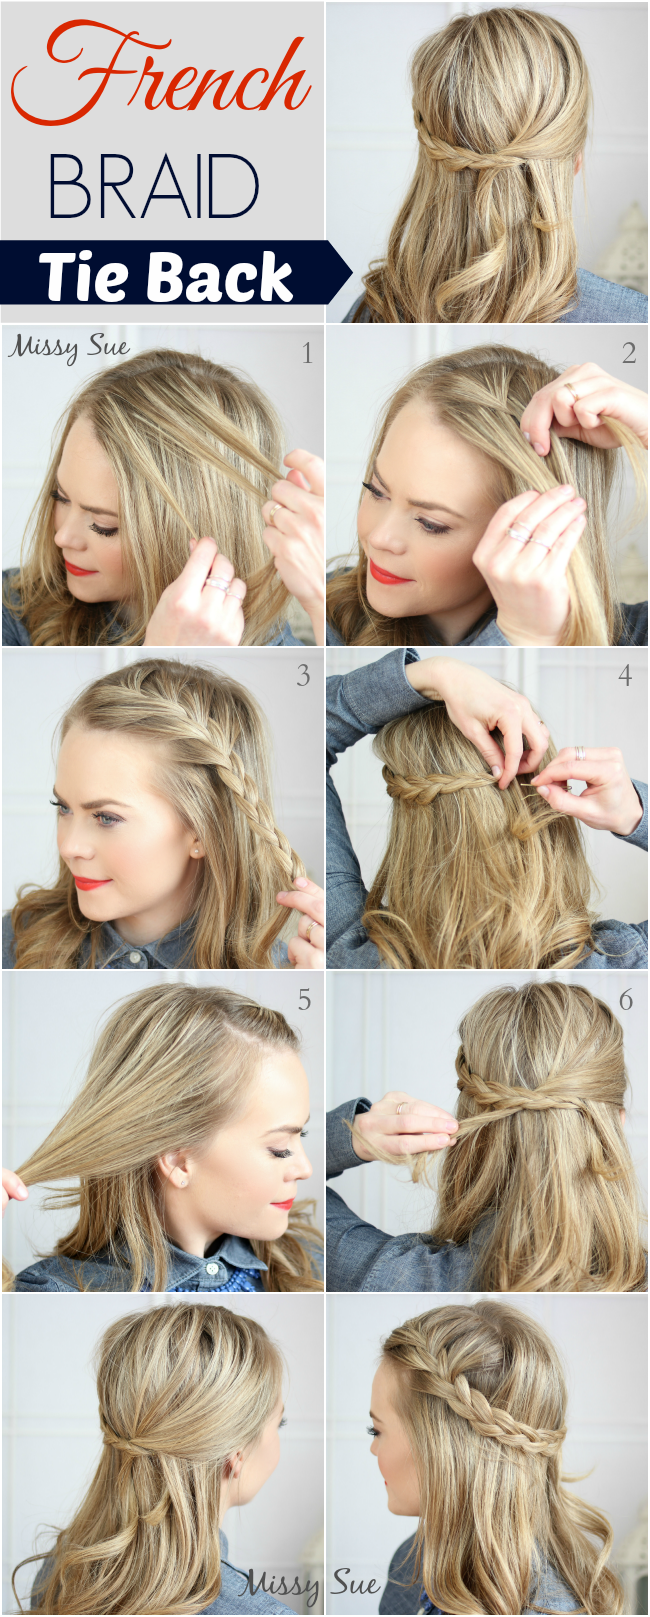 Braid 17 French Braid Tie Back Long Hair Styles Hair Styles Braids For Long Hair